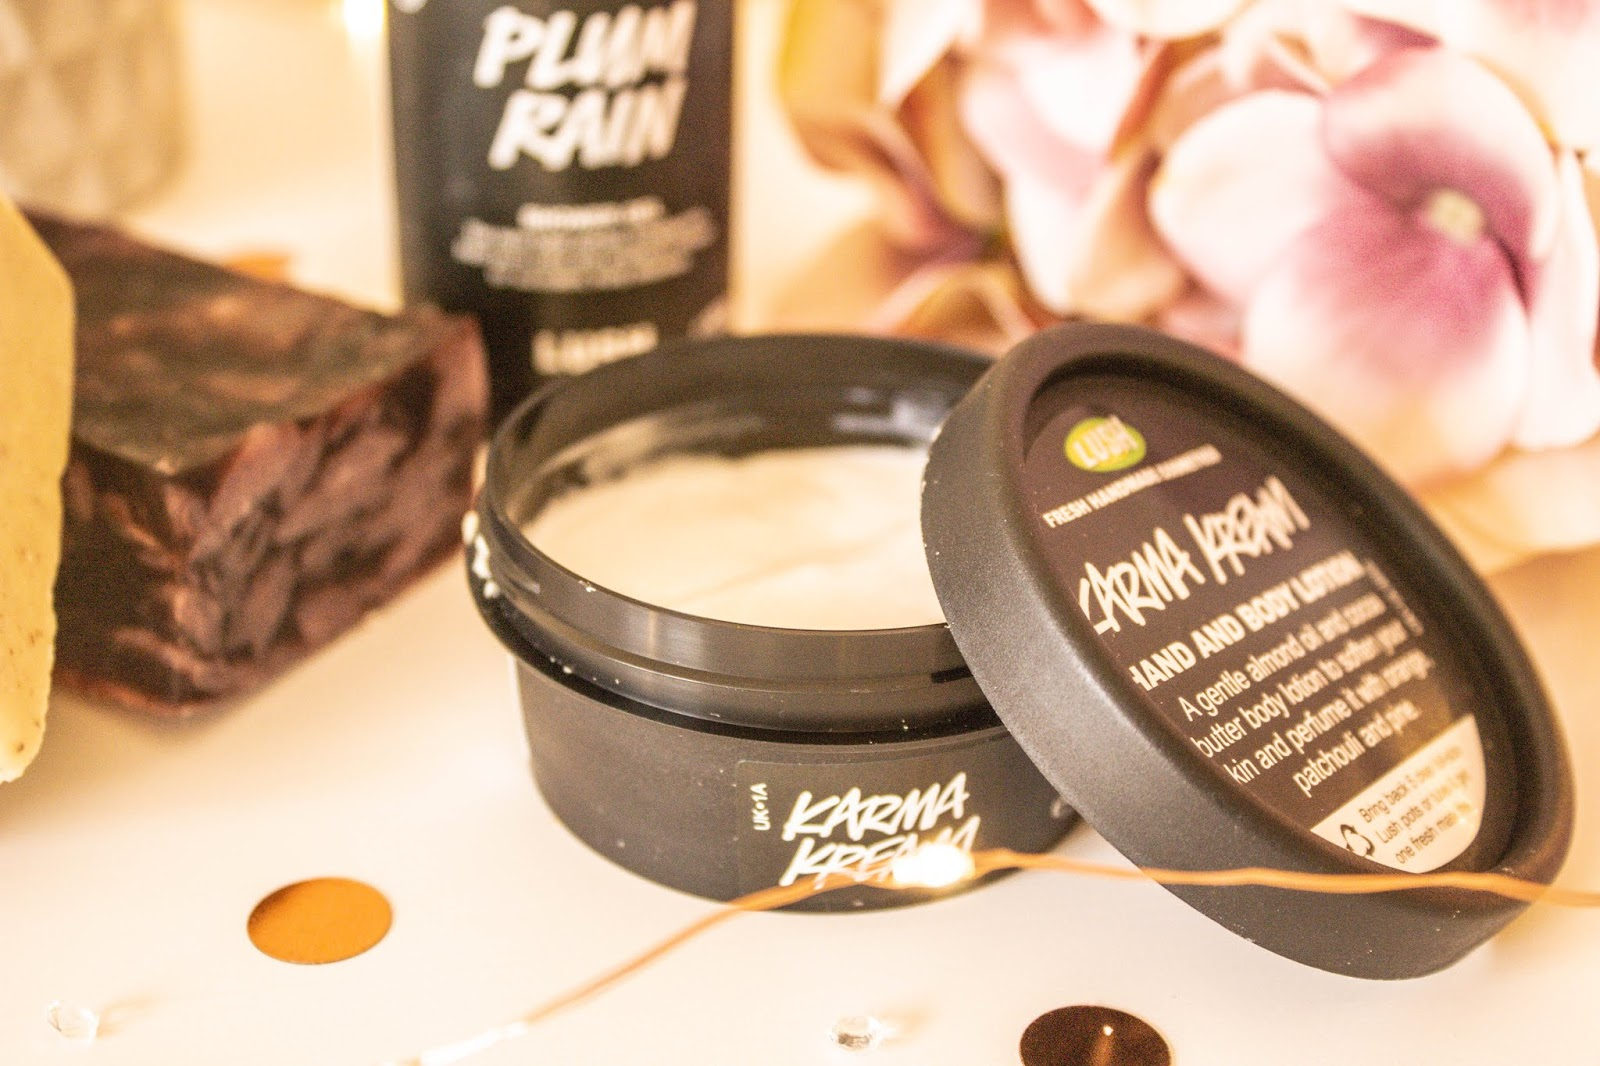 Lush Karma Kream Hand And Body Cream